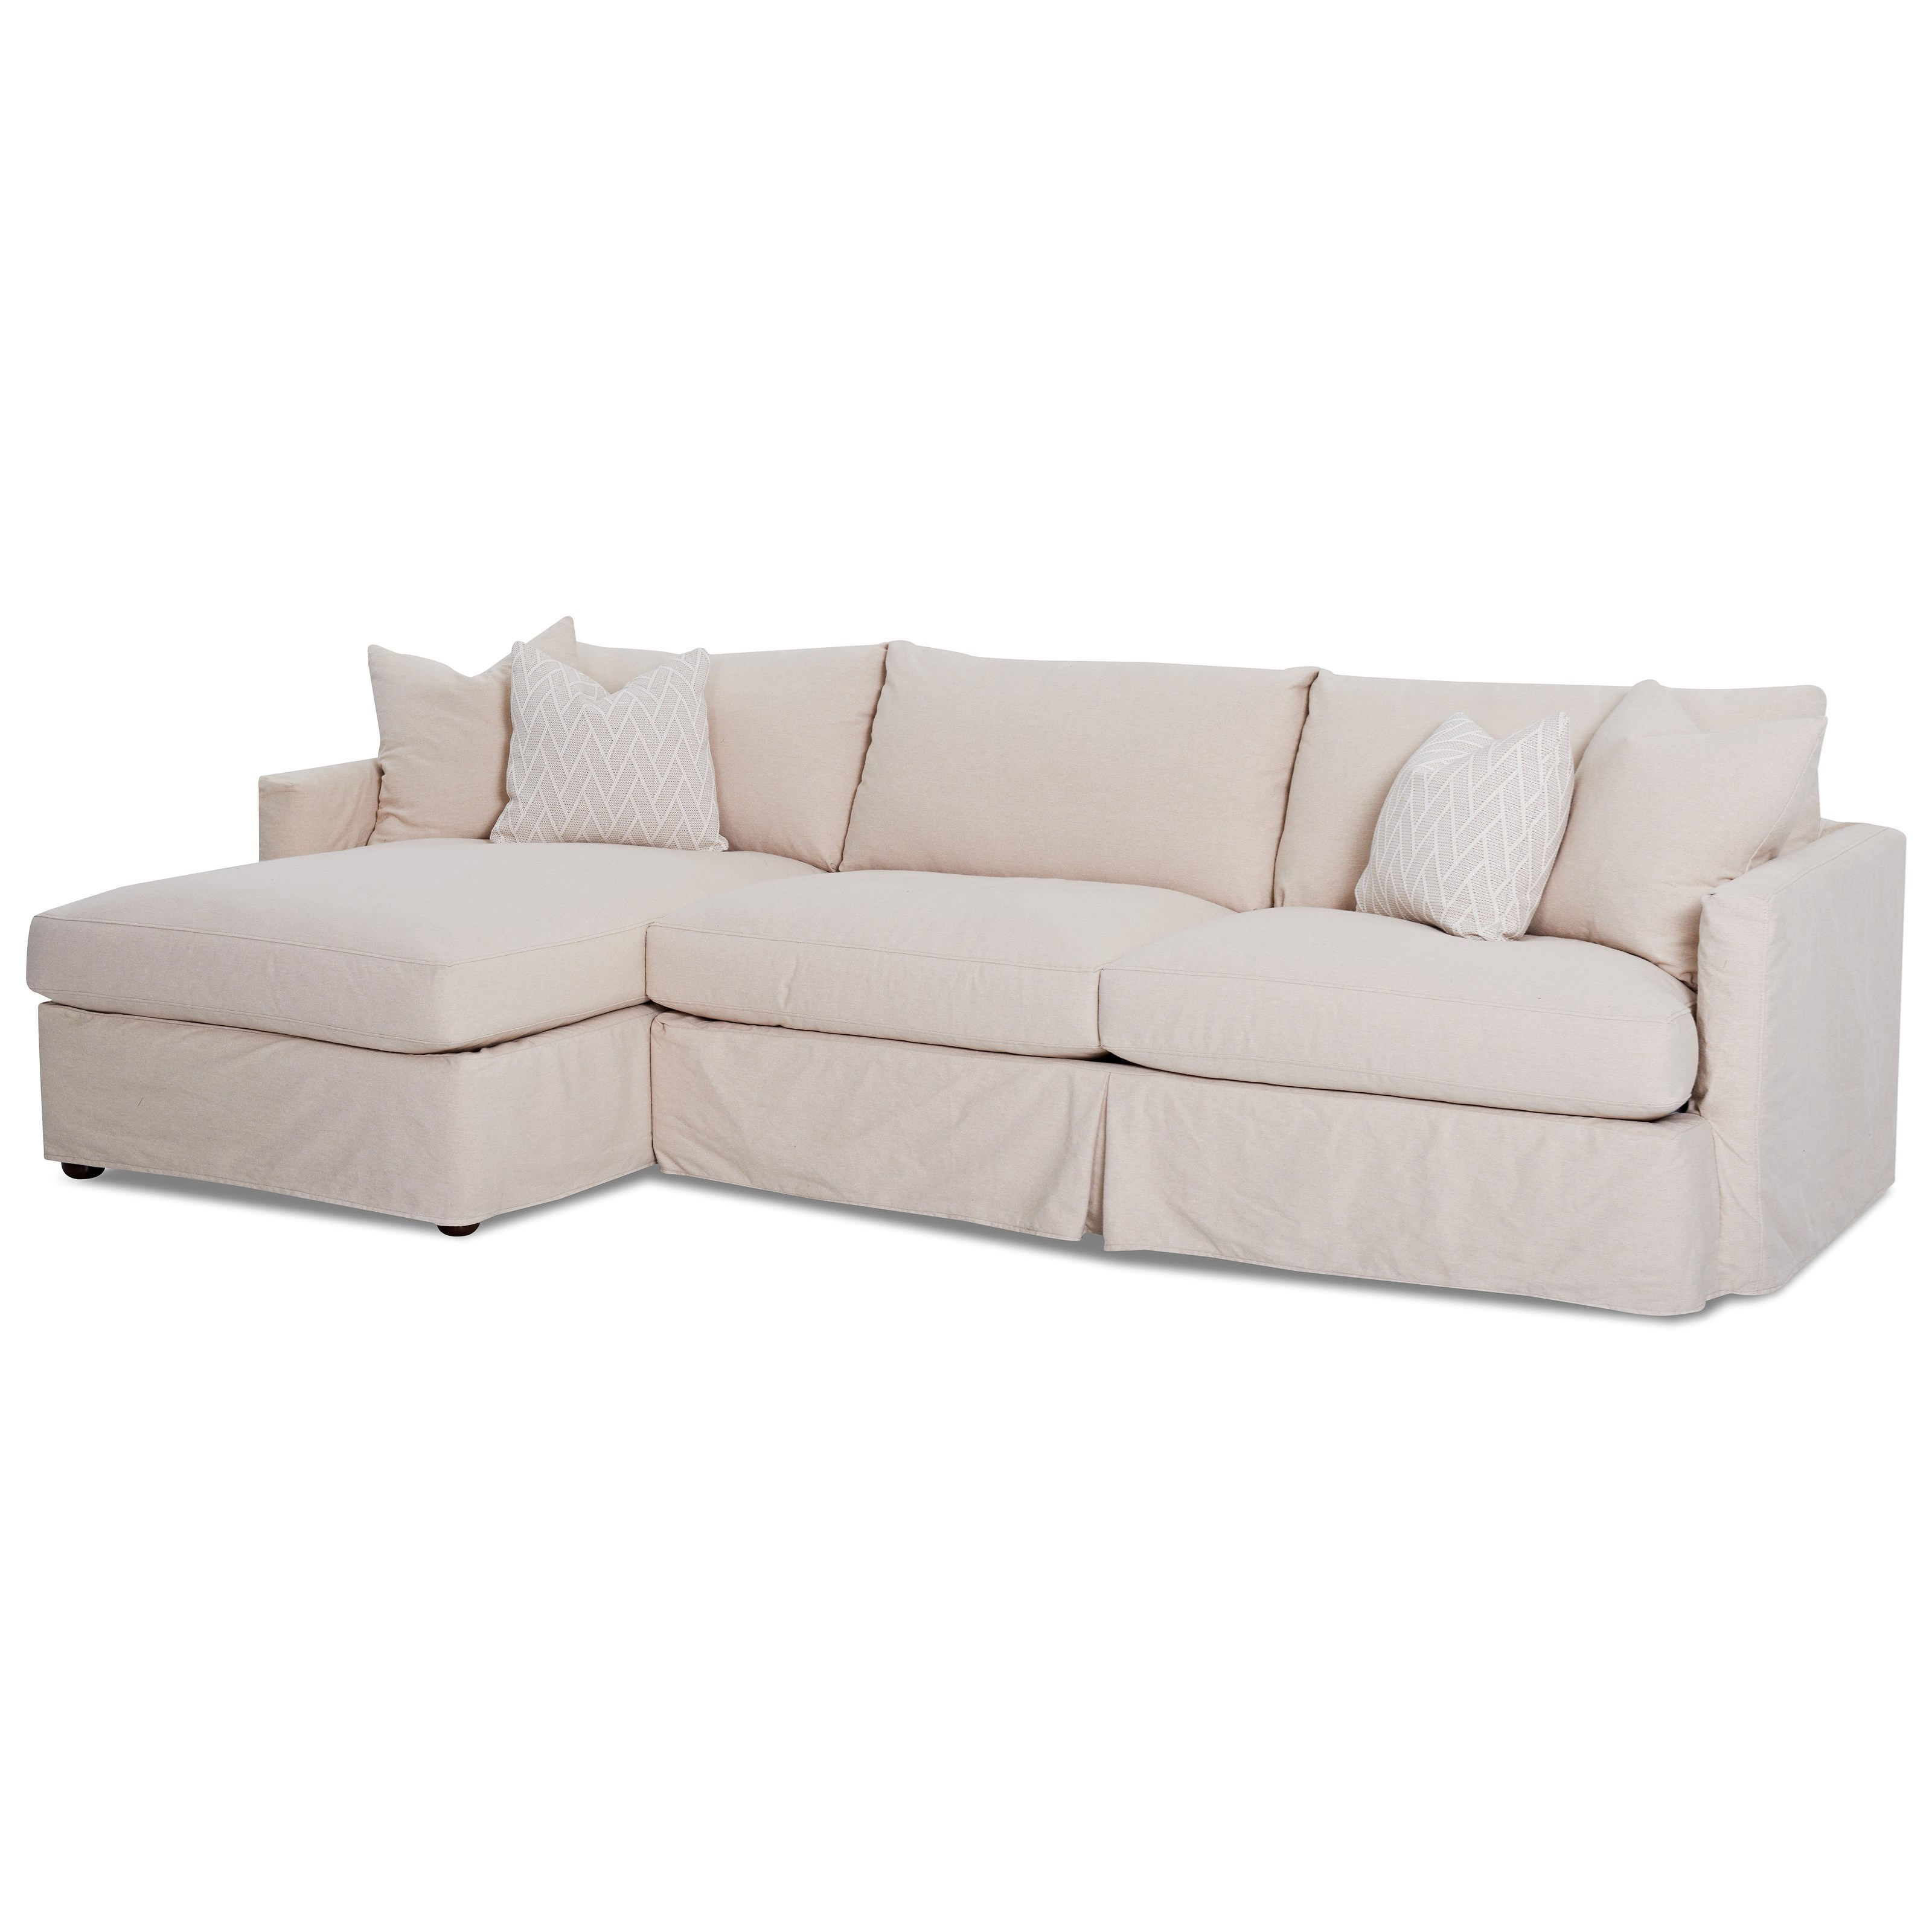 Klaussner Leisure 2 Pc Sectional Sofa with Slipcover - Item Number: D4133 L CHASE+D4133R S